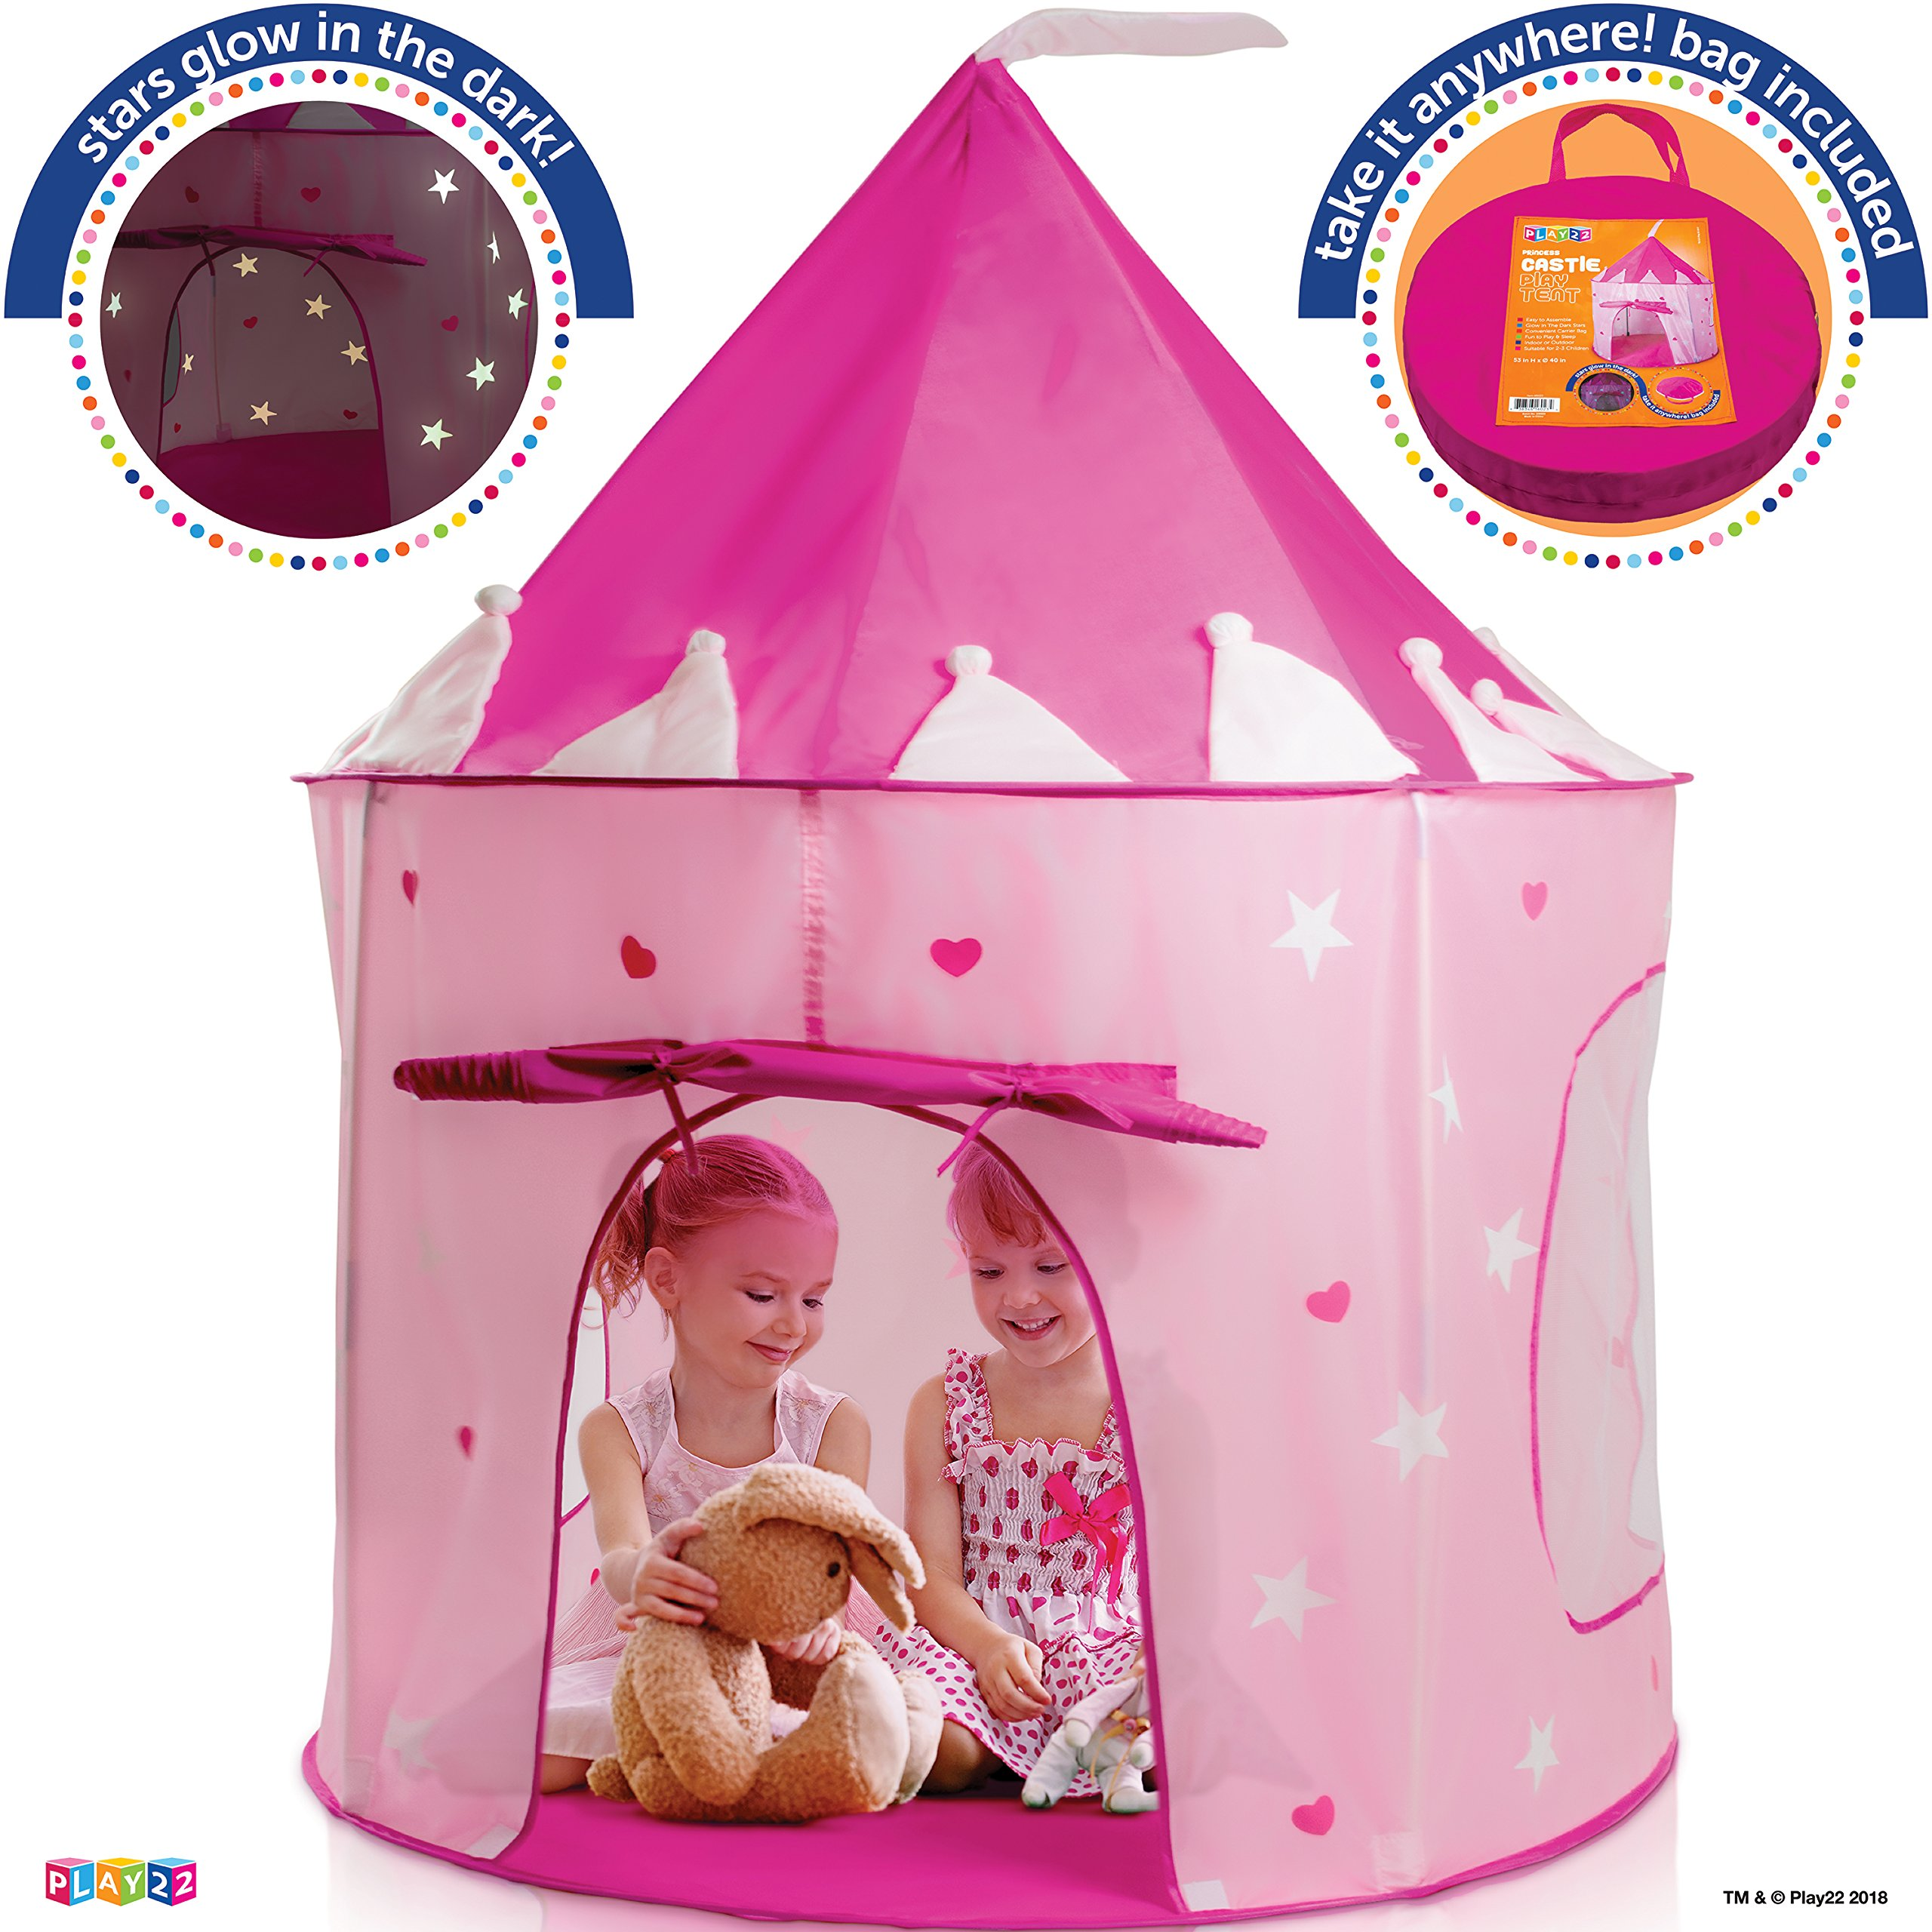 Play22 Play Tent Princess Castle Pink - Kids Tent Features Glow in The Dark Stars - Portable Kids Play Tent - Kids Pop Up Tent Foldable Into A Carrying Bag - Indoor and Outdoor Use - Original